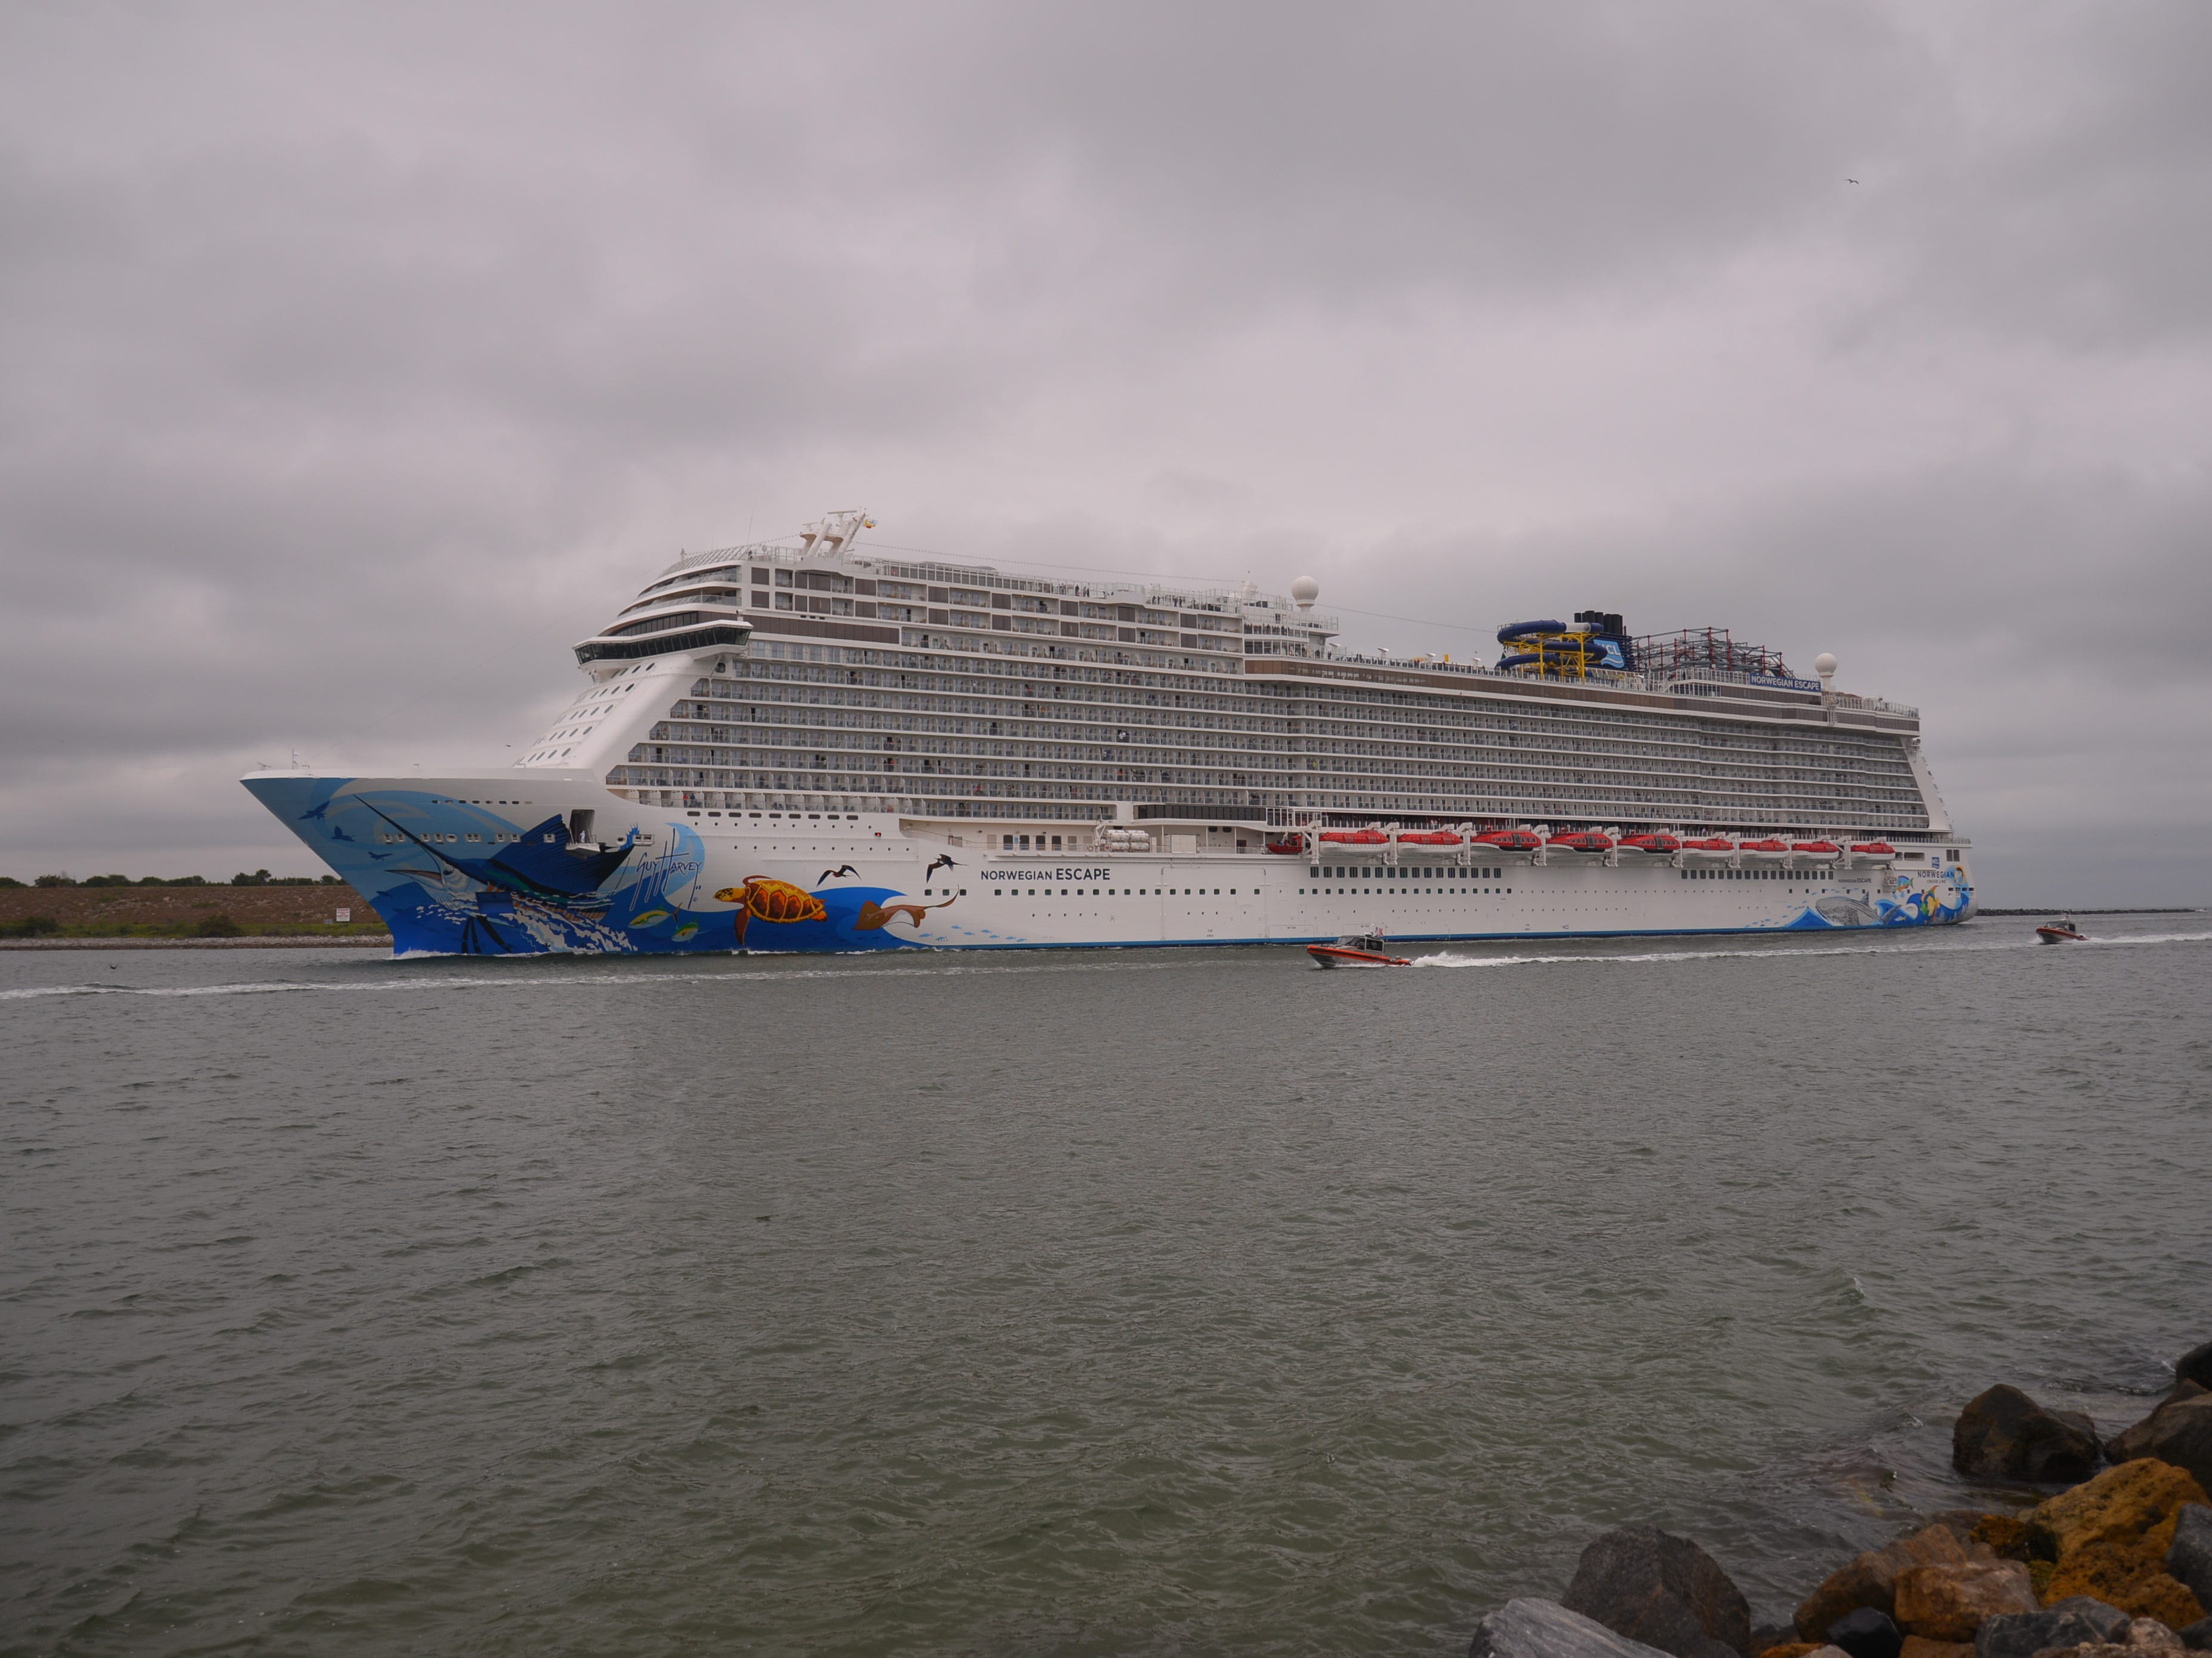 """Several passengers aboard the Norwegian Escape cruise ship were injured Sunday when what cruise officials described as a """"sudden, extreme gust of wind"""" caused the ship to suddenly list. The ship docked about 11:30 a.m. at Terminal 10 on the north side of Port Canaveral, and Brevard County Fire Rescue ambulances lined up by the ship to take injured passengers to local hospitals. In a series of tweets, Norwegian cruise officials said the 20-deck ship suddenly tilted just before midnight Sunday under the force of an unexpected gale topping 100 knots, or about 115 mph."""